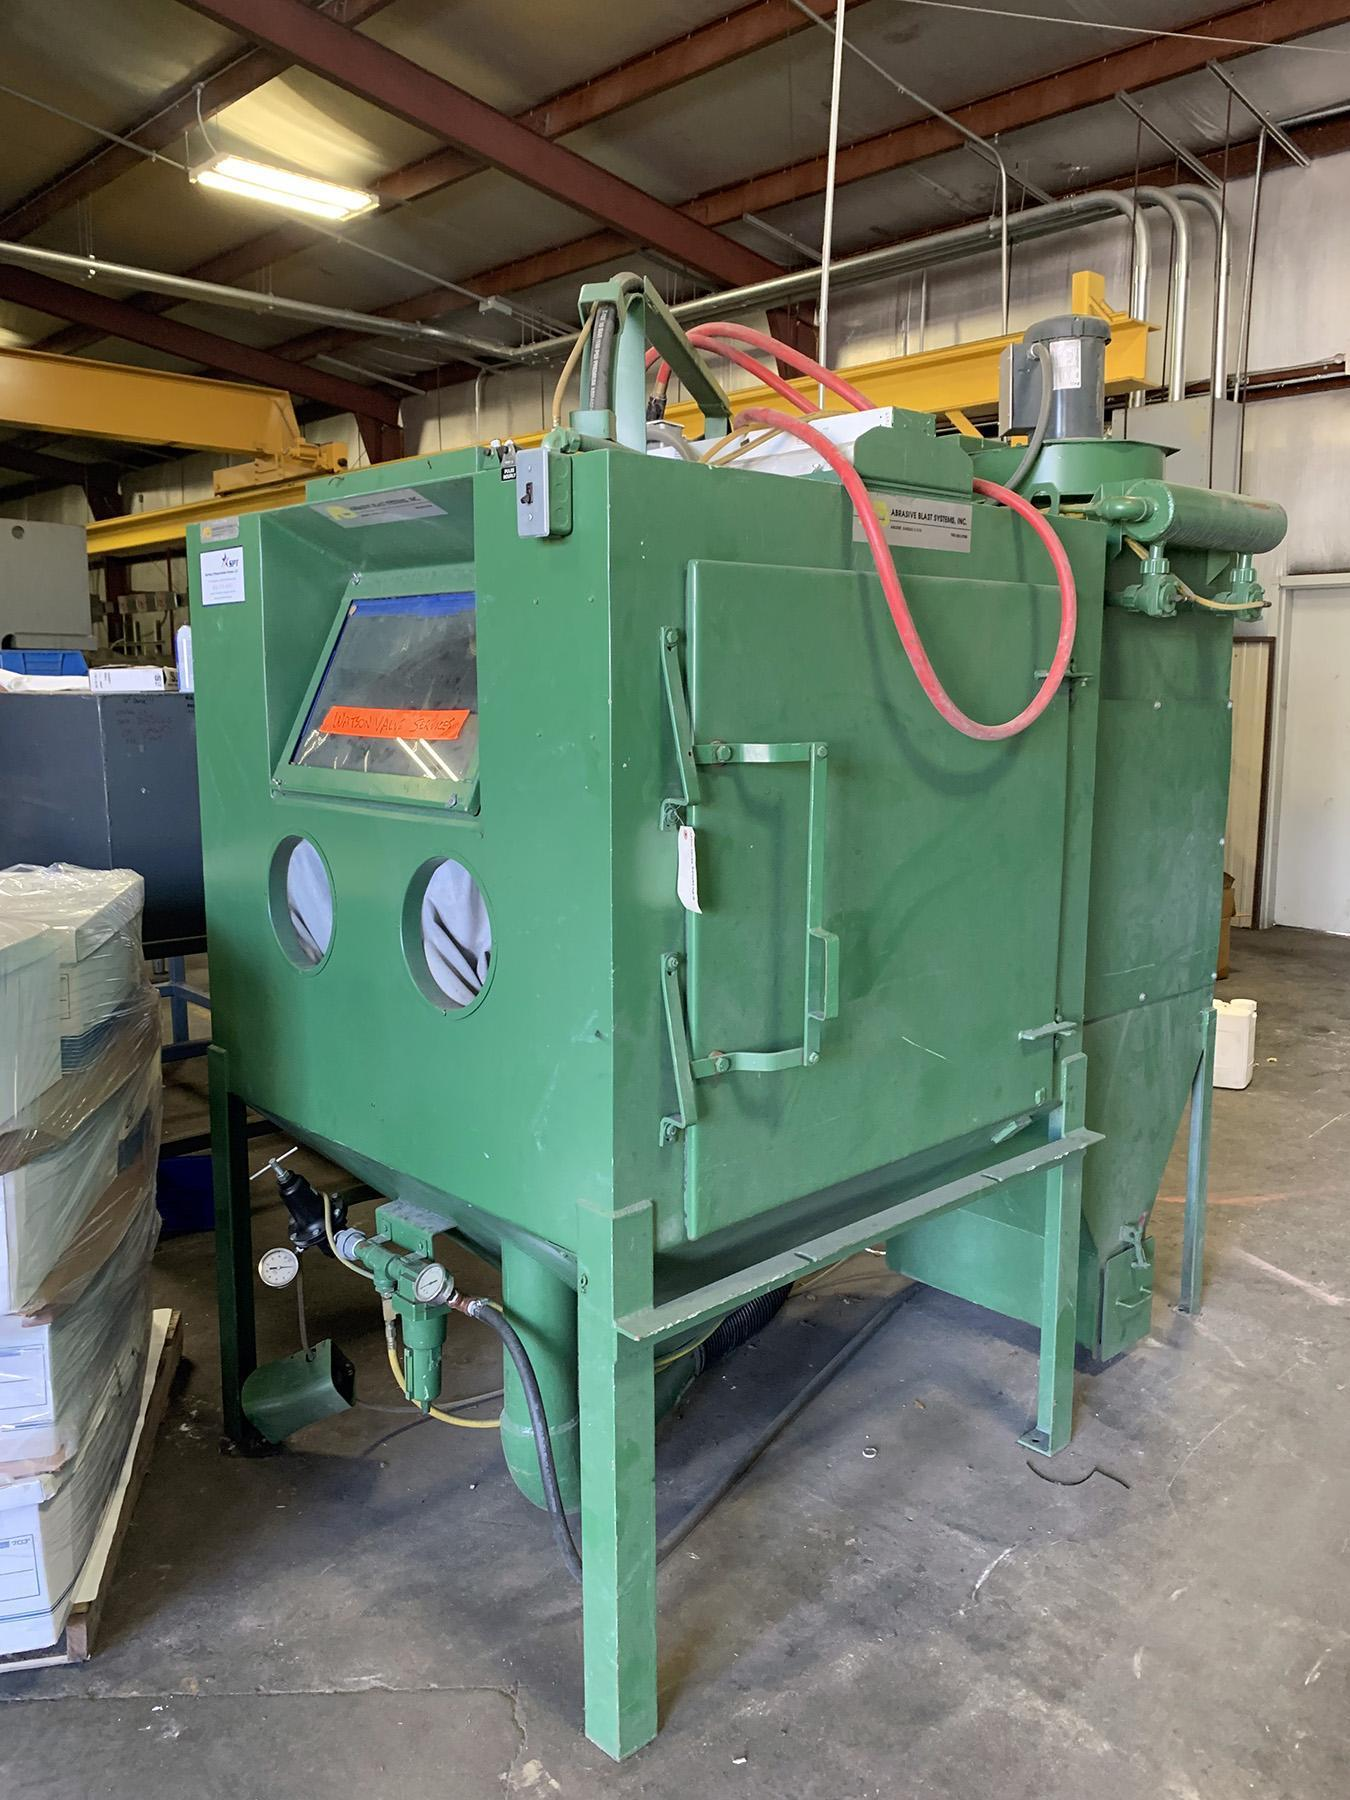 USED, ABRASIVE BLAST SYSTEMS INC. MODEL 4848PRC BLAST CABINET